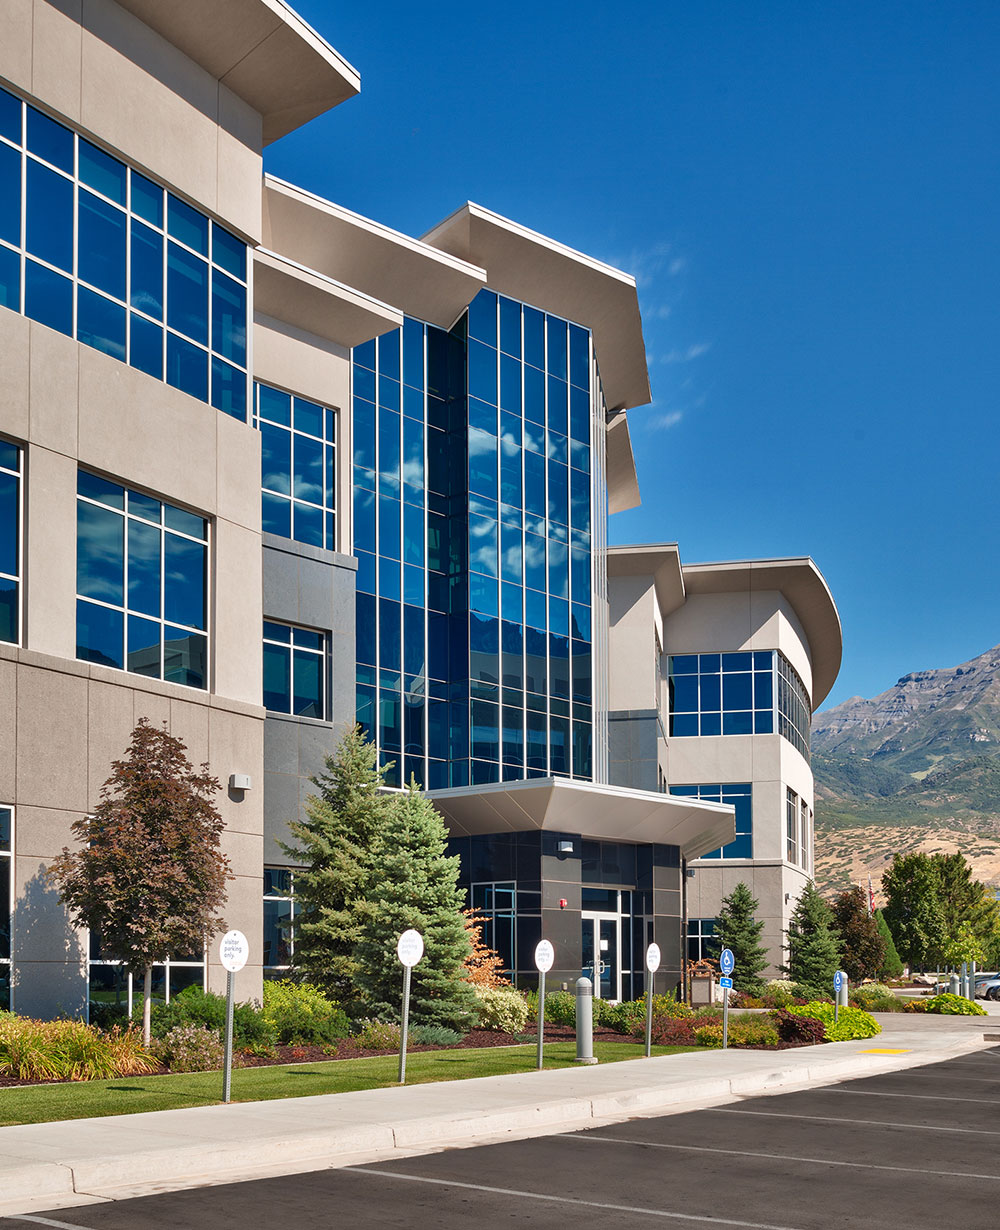 Commercial-Architecture-Utah-Vivint-Office-Park-(2)